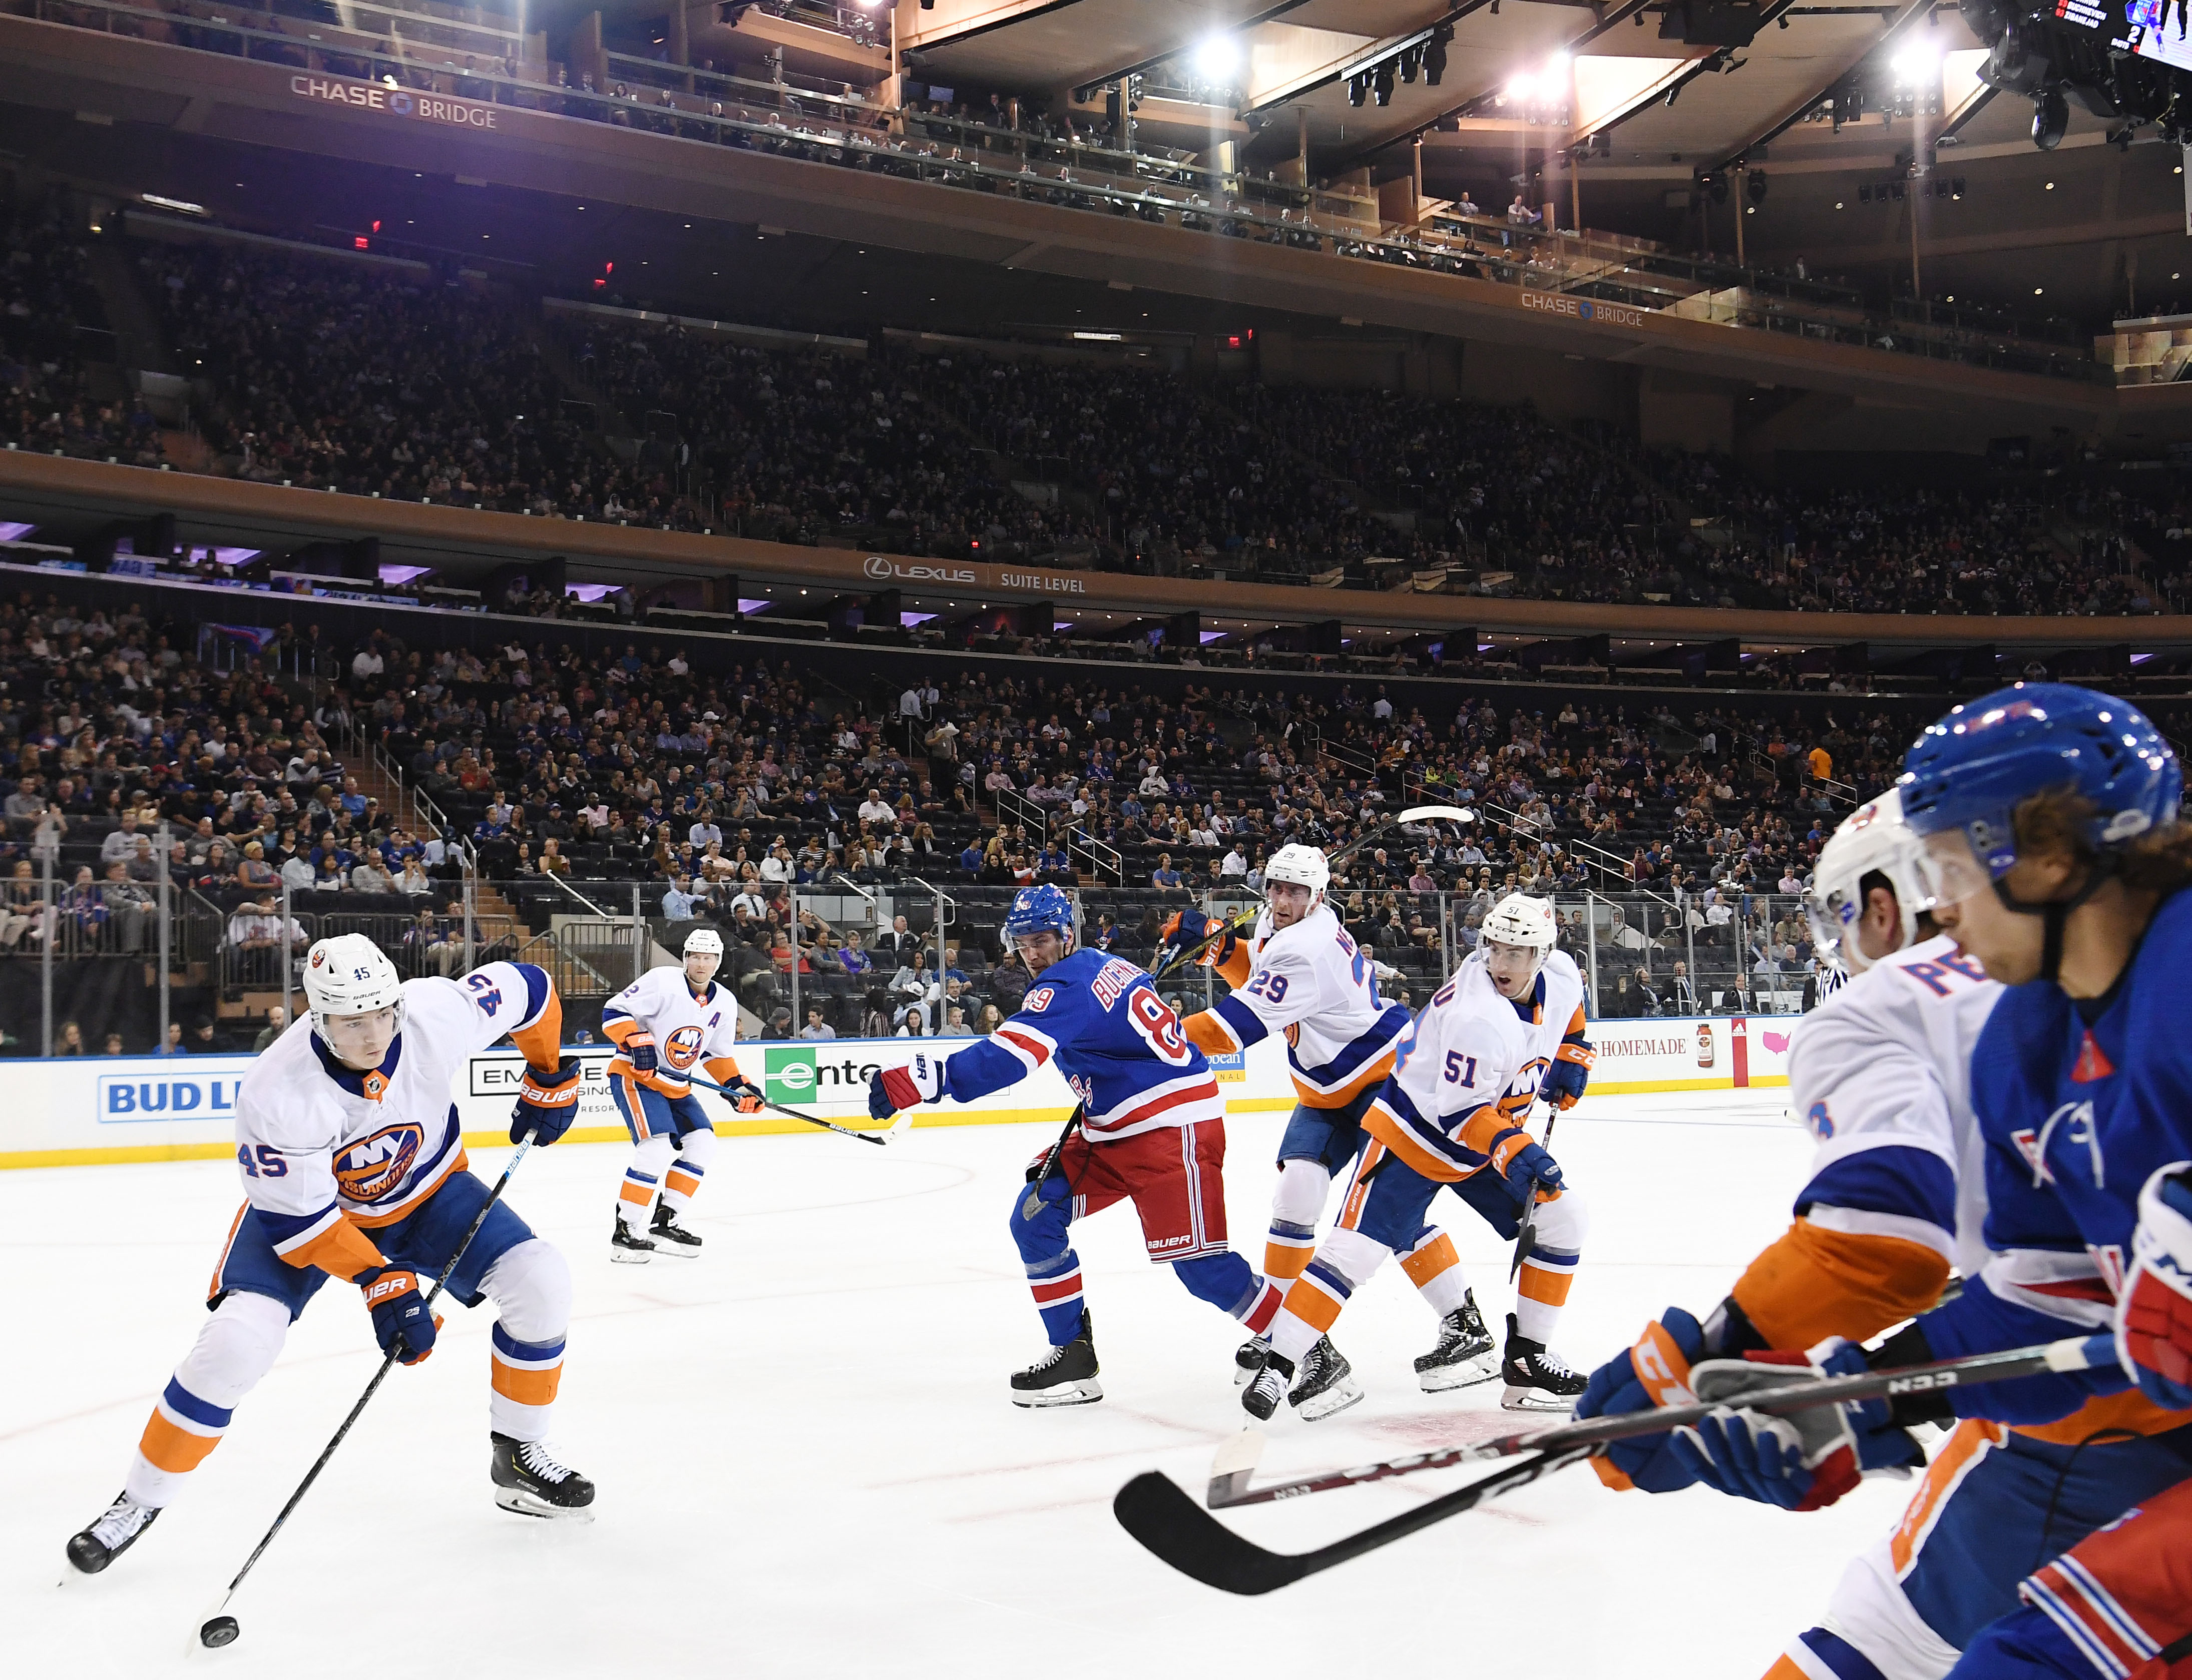 Whether or not Dobson makes Isles roster remains unclear